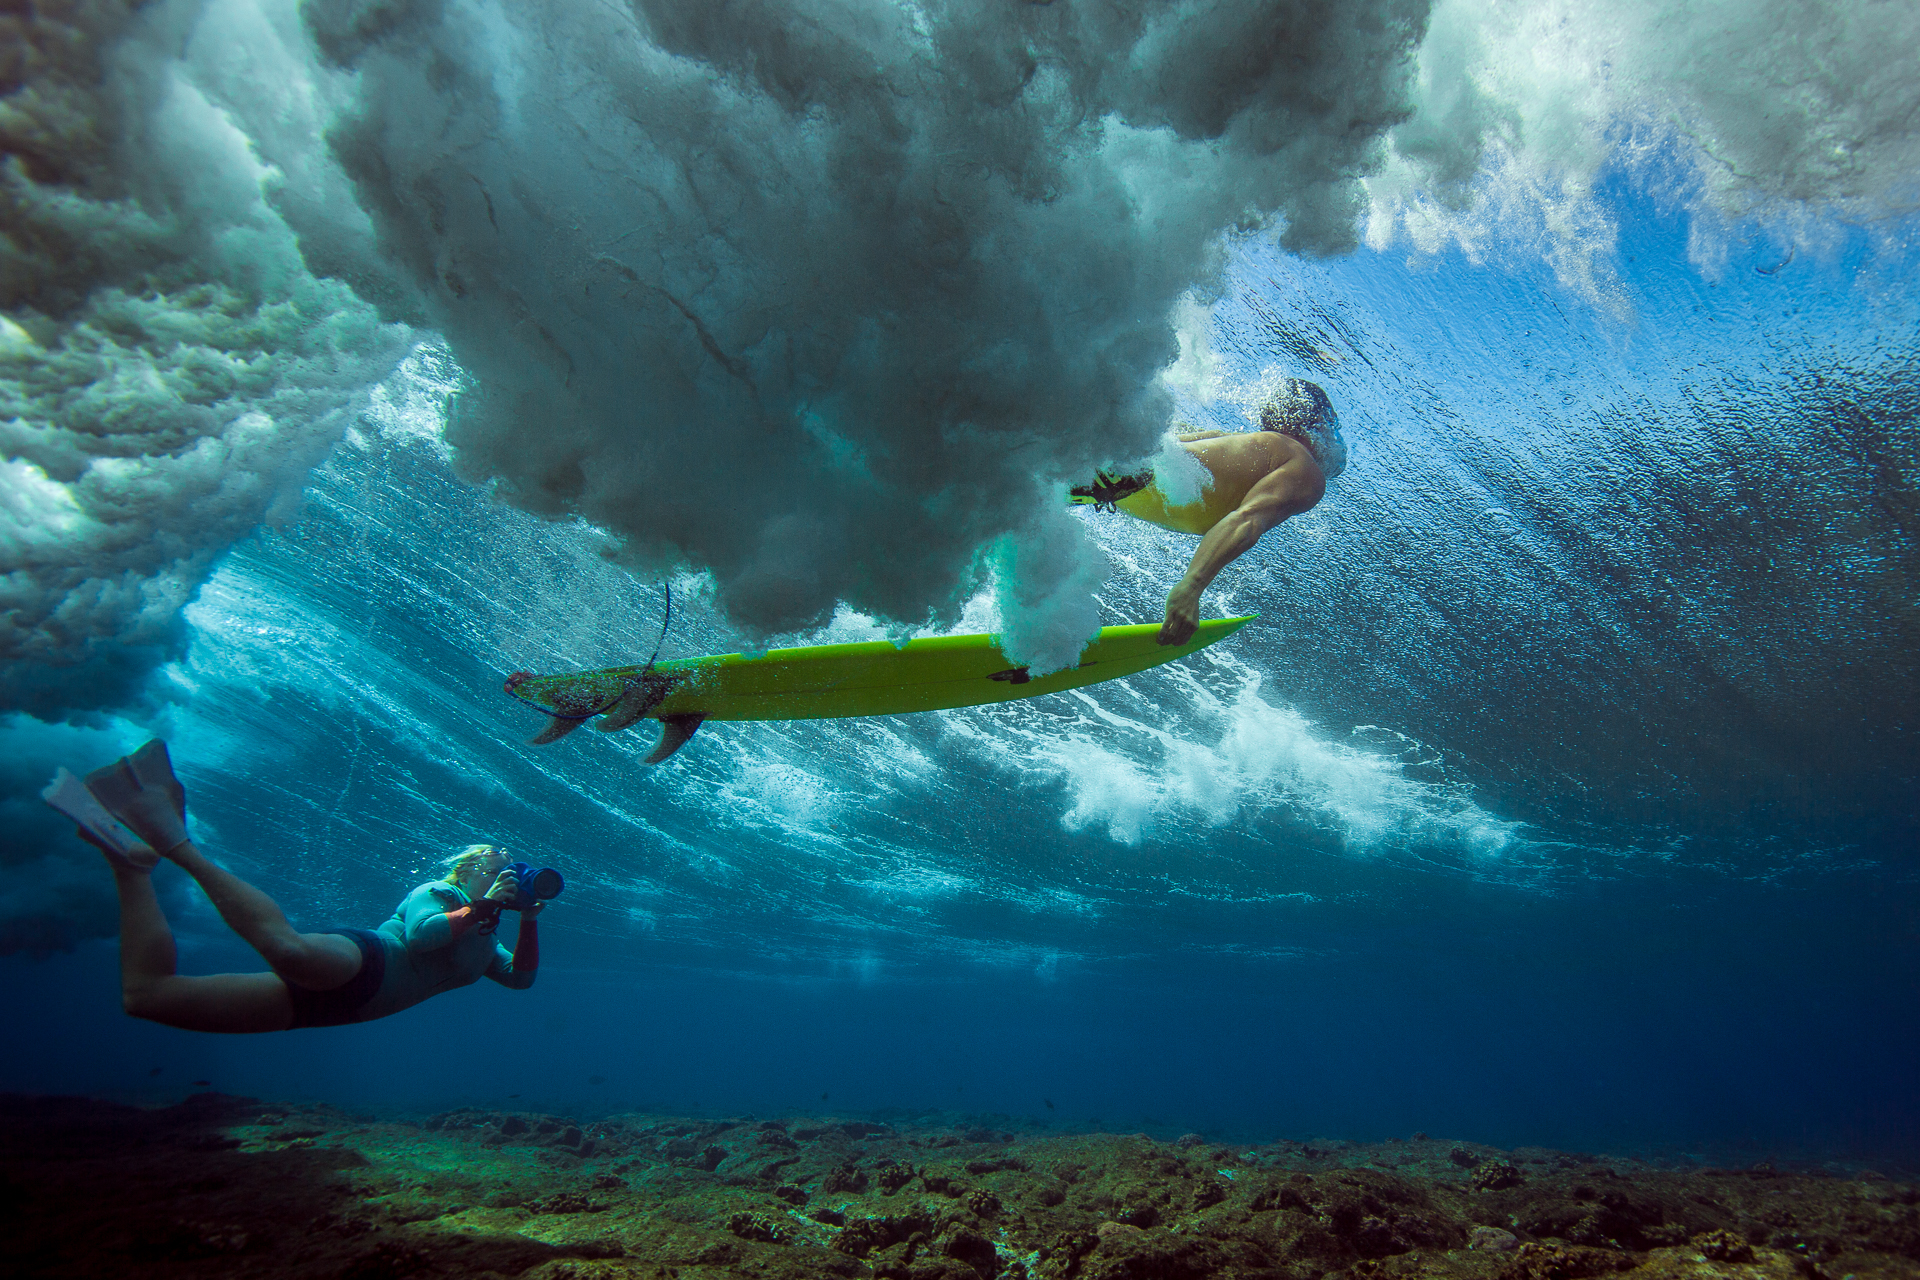 Sarah Lee photographing a surfer duck diving underwater with the original blue Outex cover. (Photo: Mark Tipple)